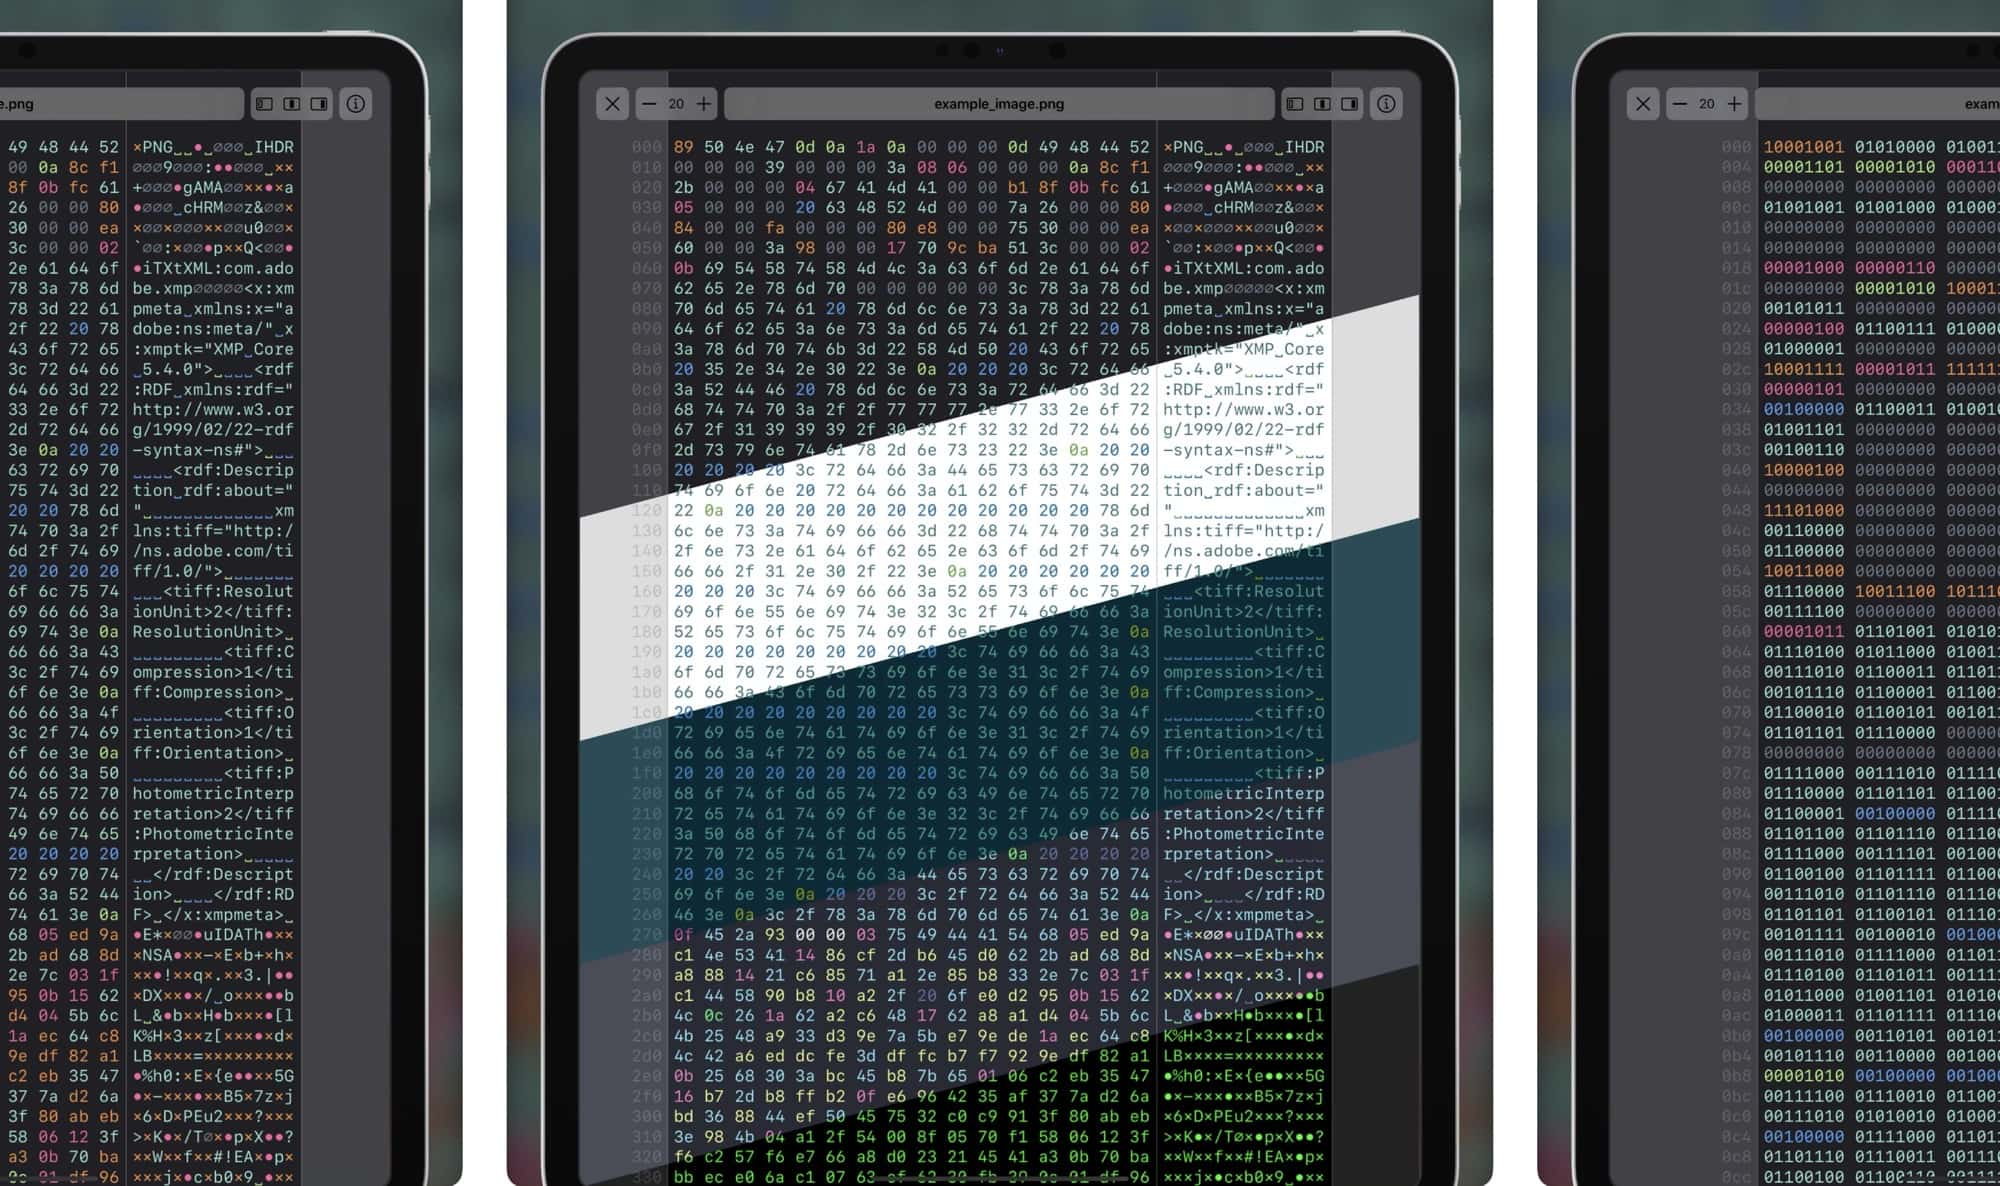 View and edit Hex files with Hexer.